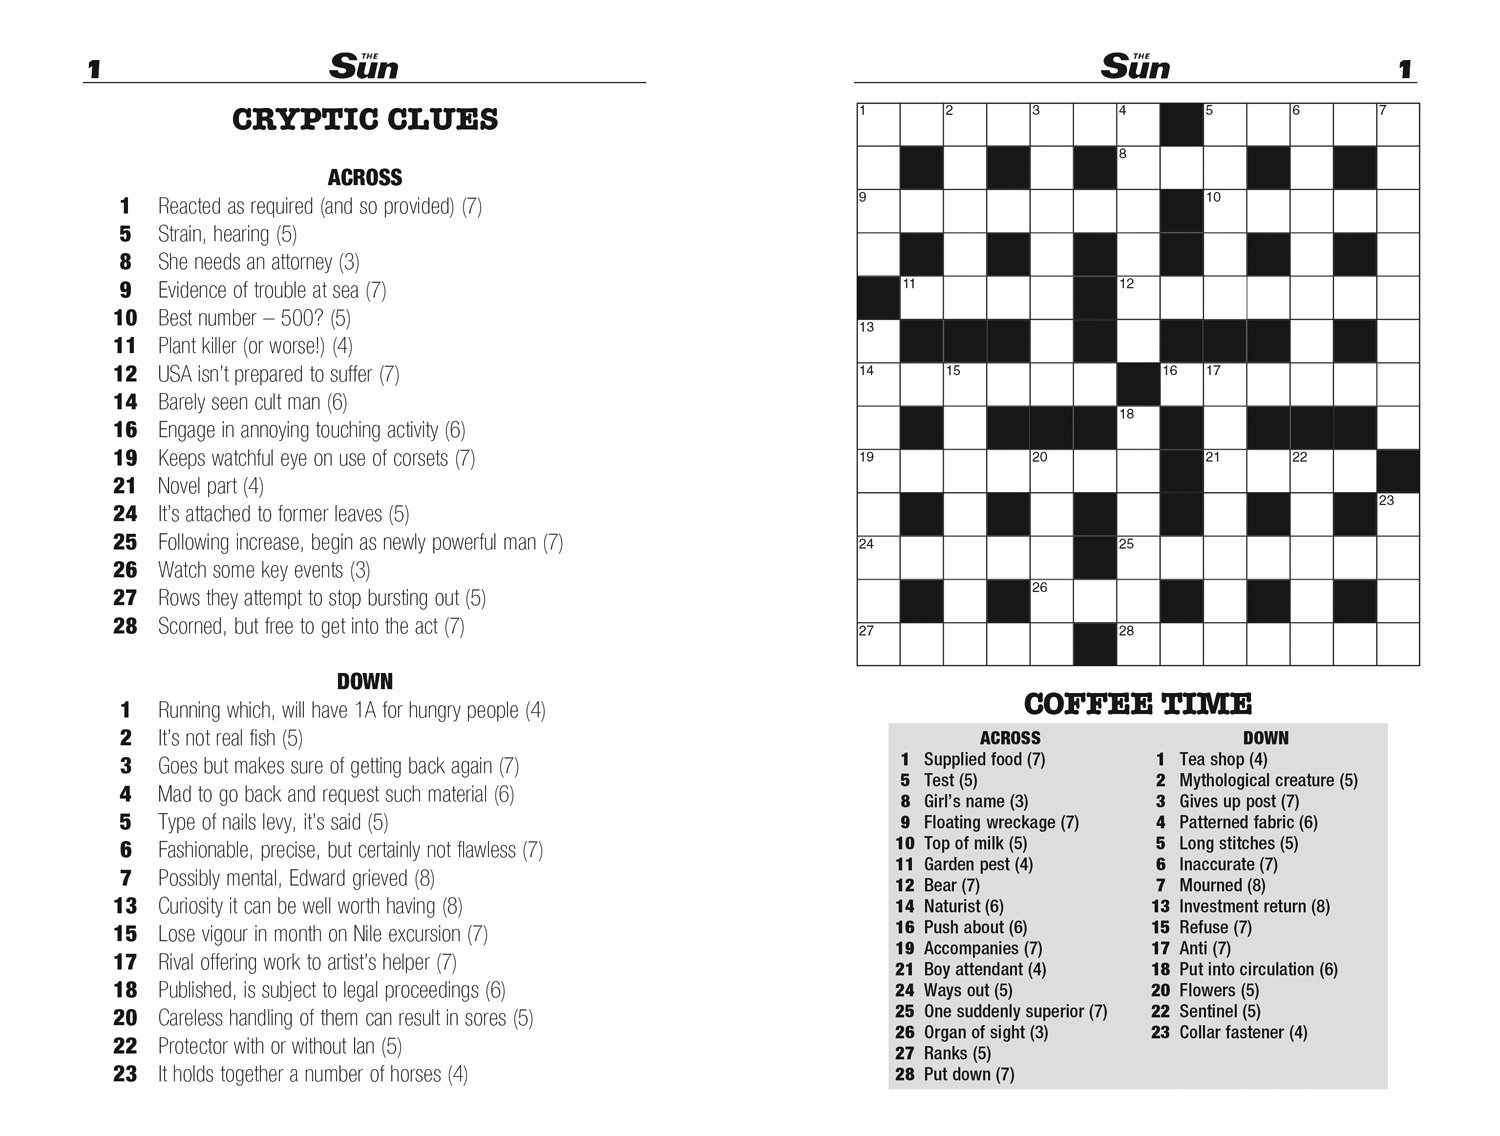 The Sun Two Speed Crossword Collection 2 160 In One Cryptic And Coffee Time Crosswords Bind Up Edition 9780008127541 Amazon Books